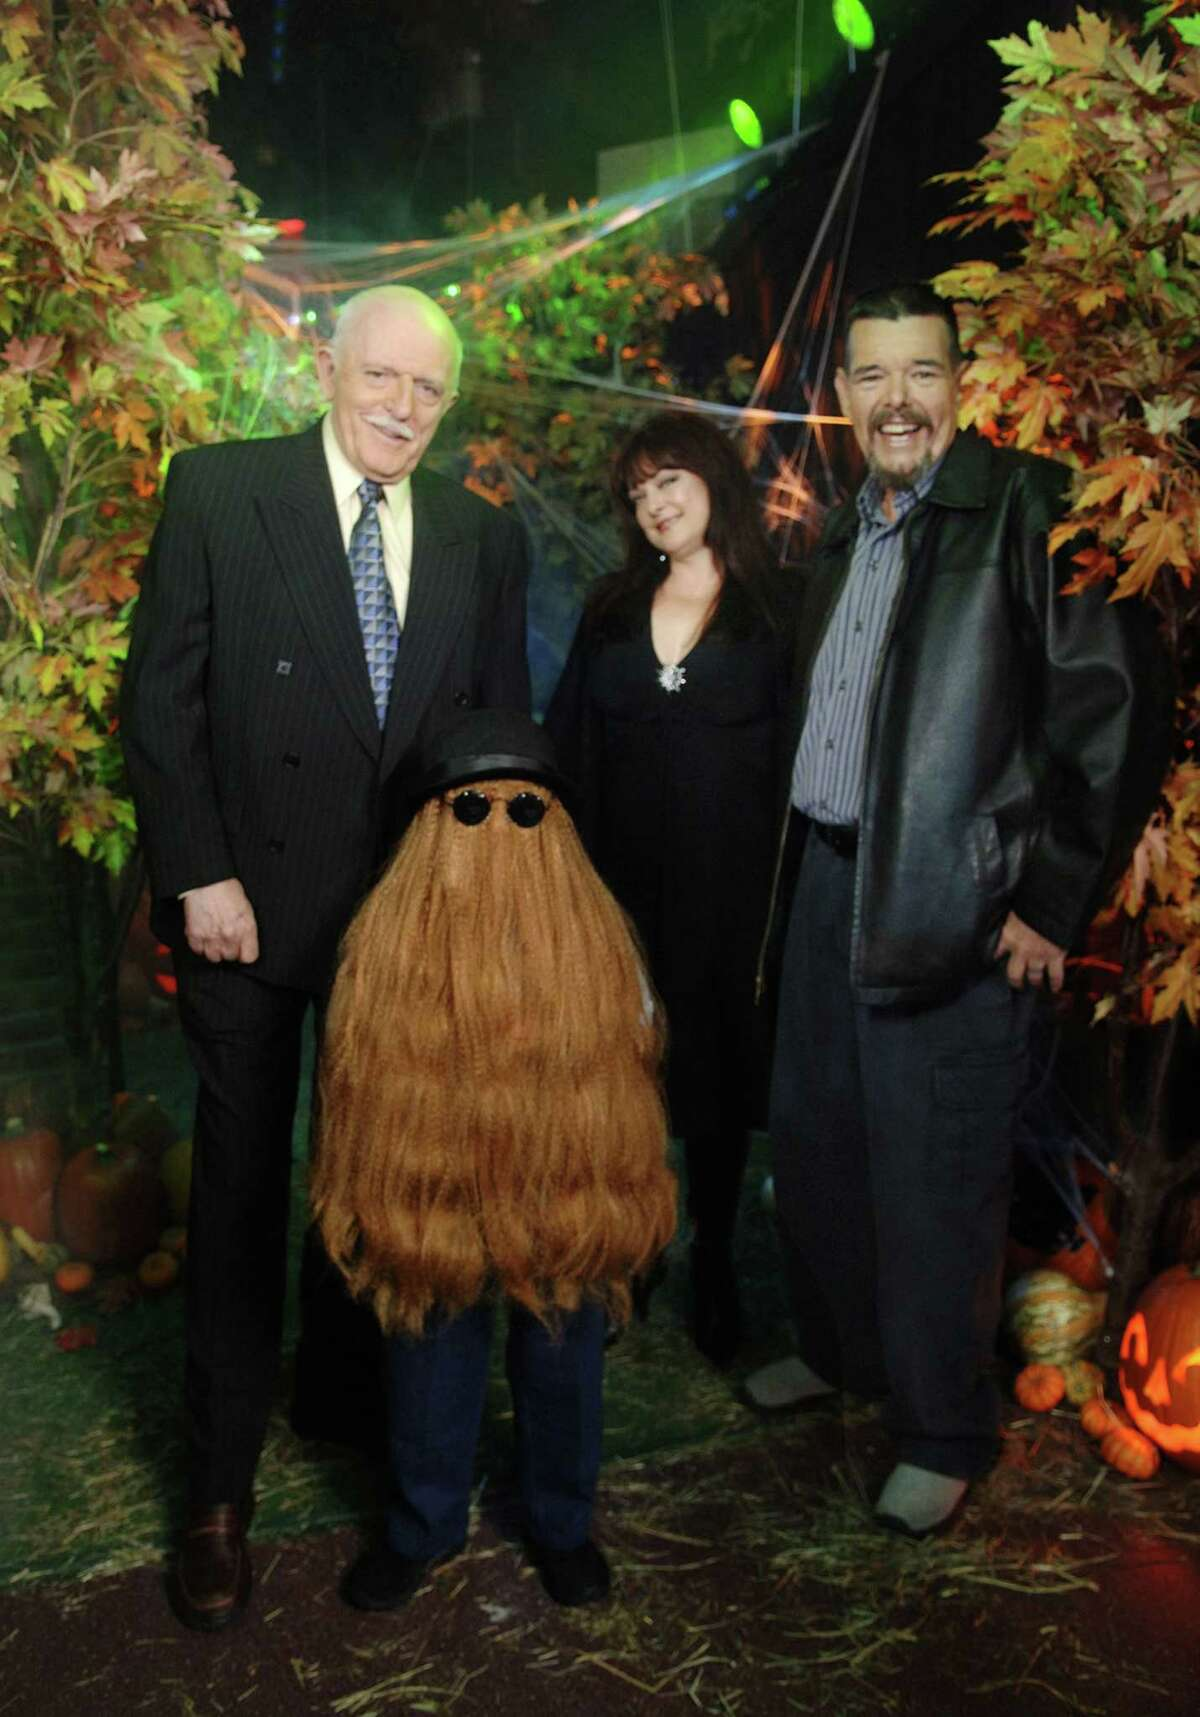 """This Oct. 31, 2006 photo provided by ABC, shows some of the original cast of the TV show, """"The Addams Family,"""" from left, John Astin, (Gomez Addams), Felix Silla, (Cousin Itt), Lisa Loring, (Wednesday Addams) and Ken Weatherwax, (Pugsley Addams), reunited at a special Halloween edition of ABC's """"Good Morning America"""" outside their Times Square studios in New York. Weatherwax, who played the child character Pugsley on """"The Addams Family"""" television series in the 1960s, has died. He was 59."""